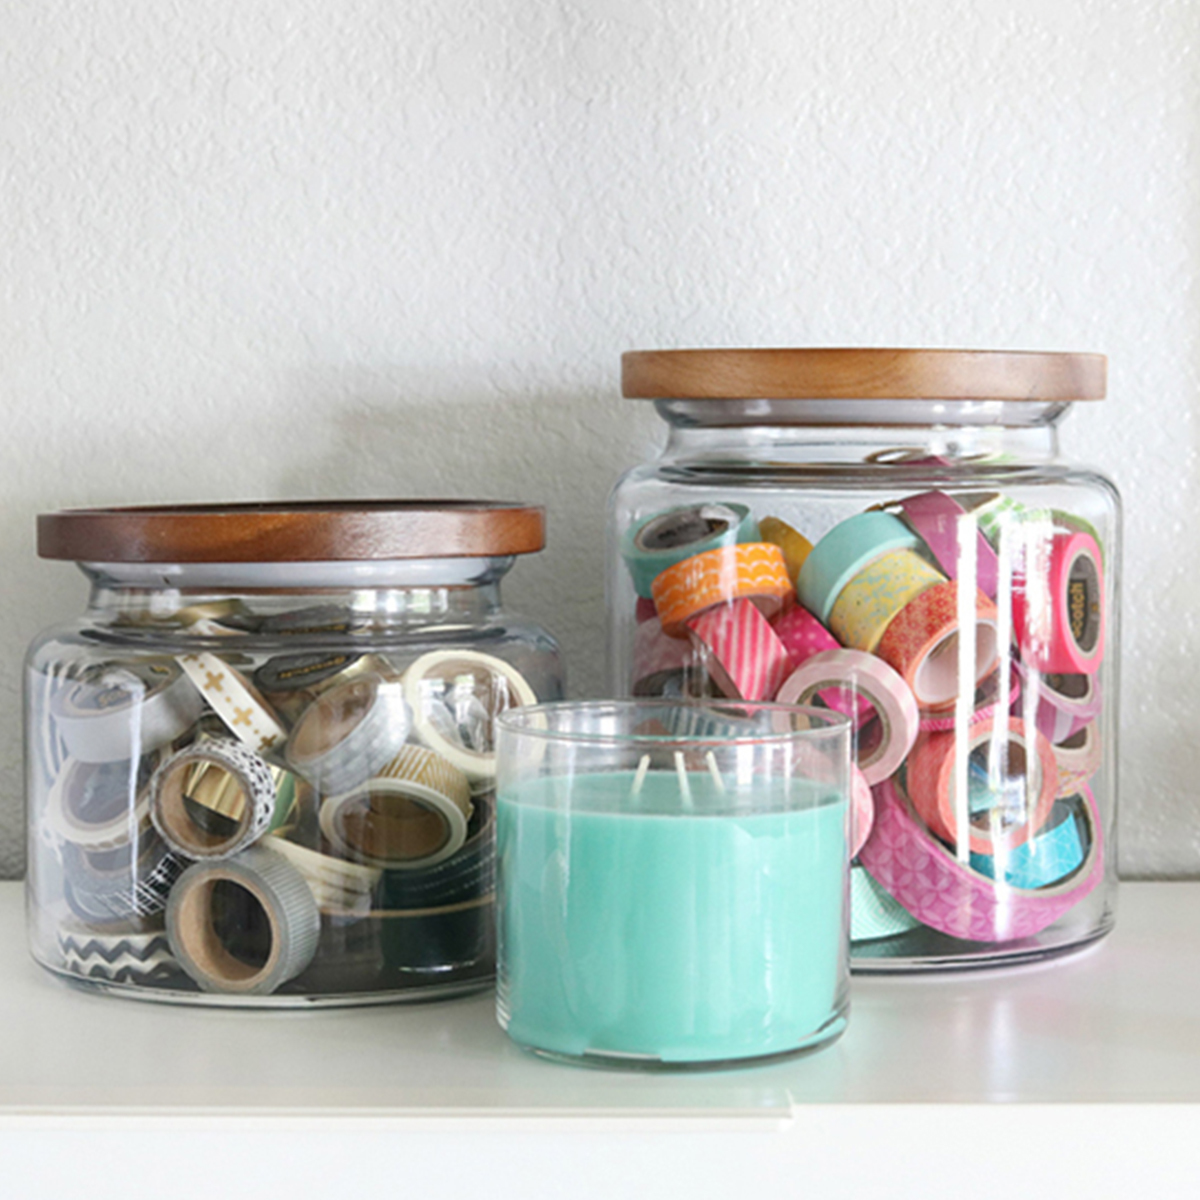 Acacia wood-top jars available in a variety of sizes for added organization. photo